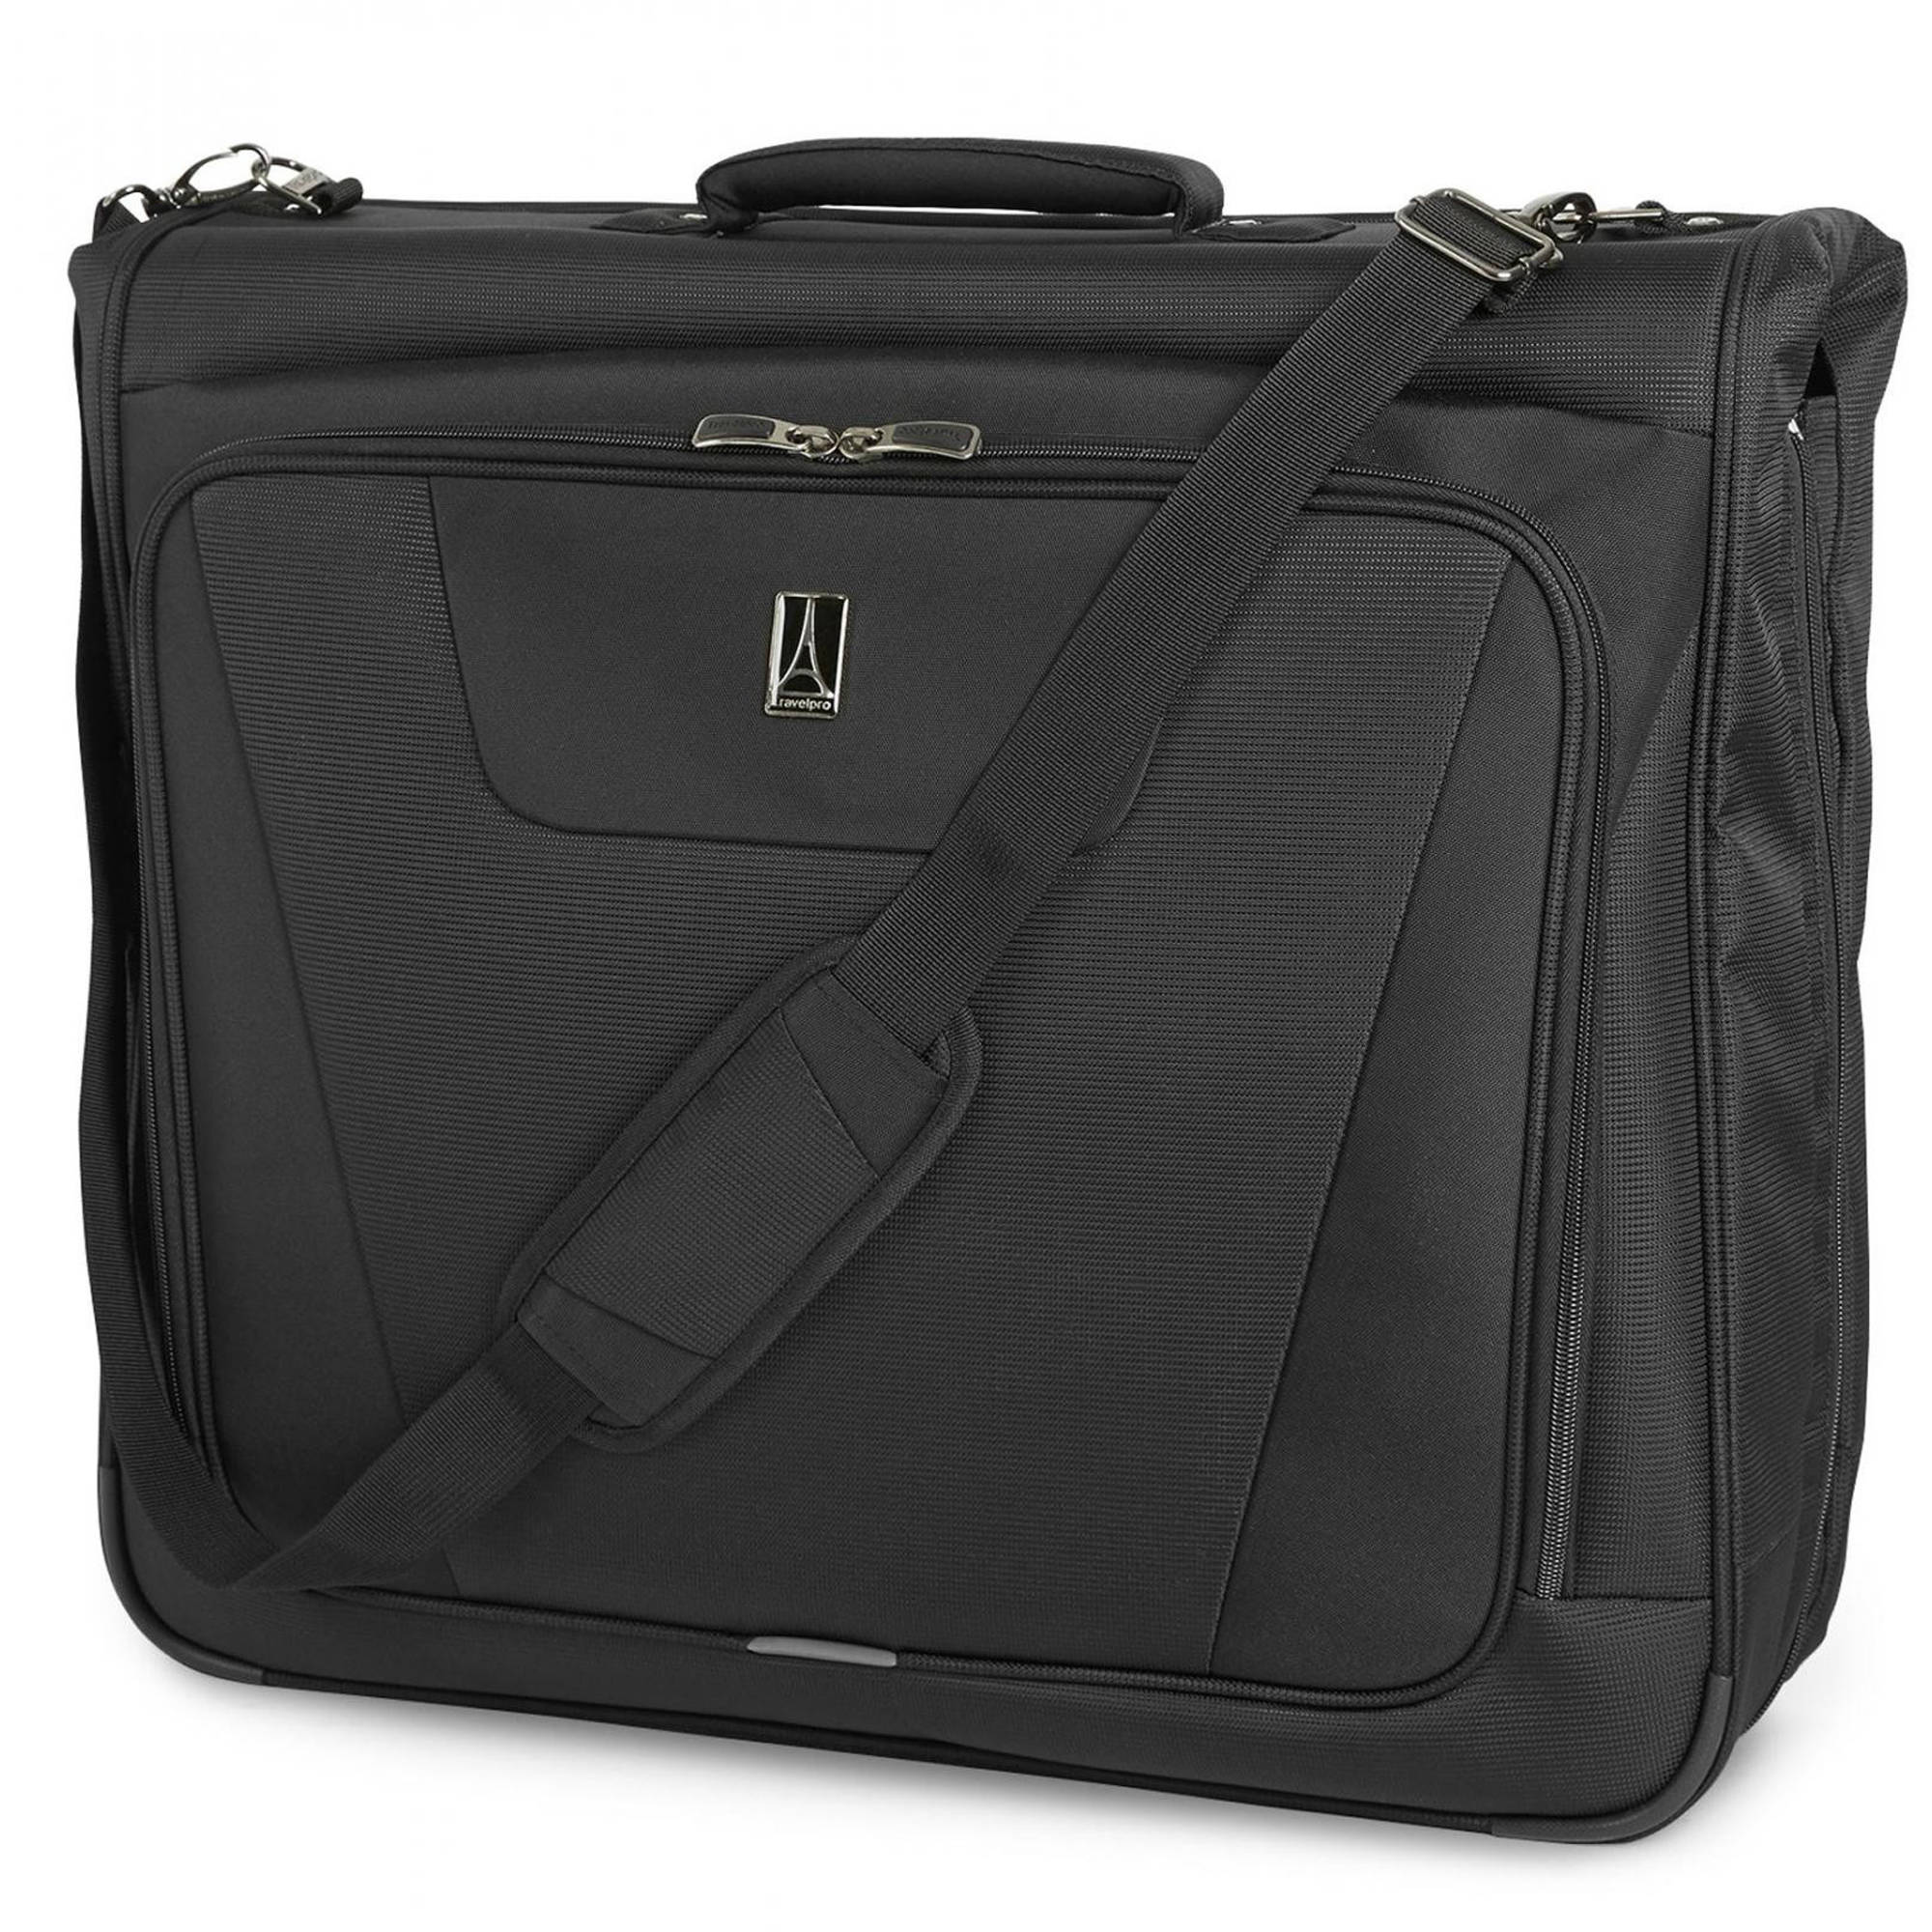 Travelpro Maxlite 4 BiFold Garment Bag, Black